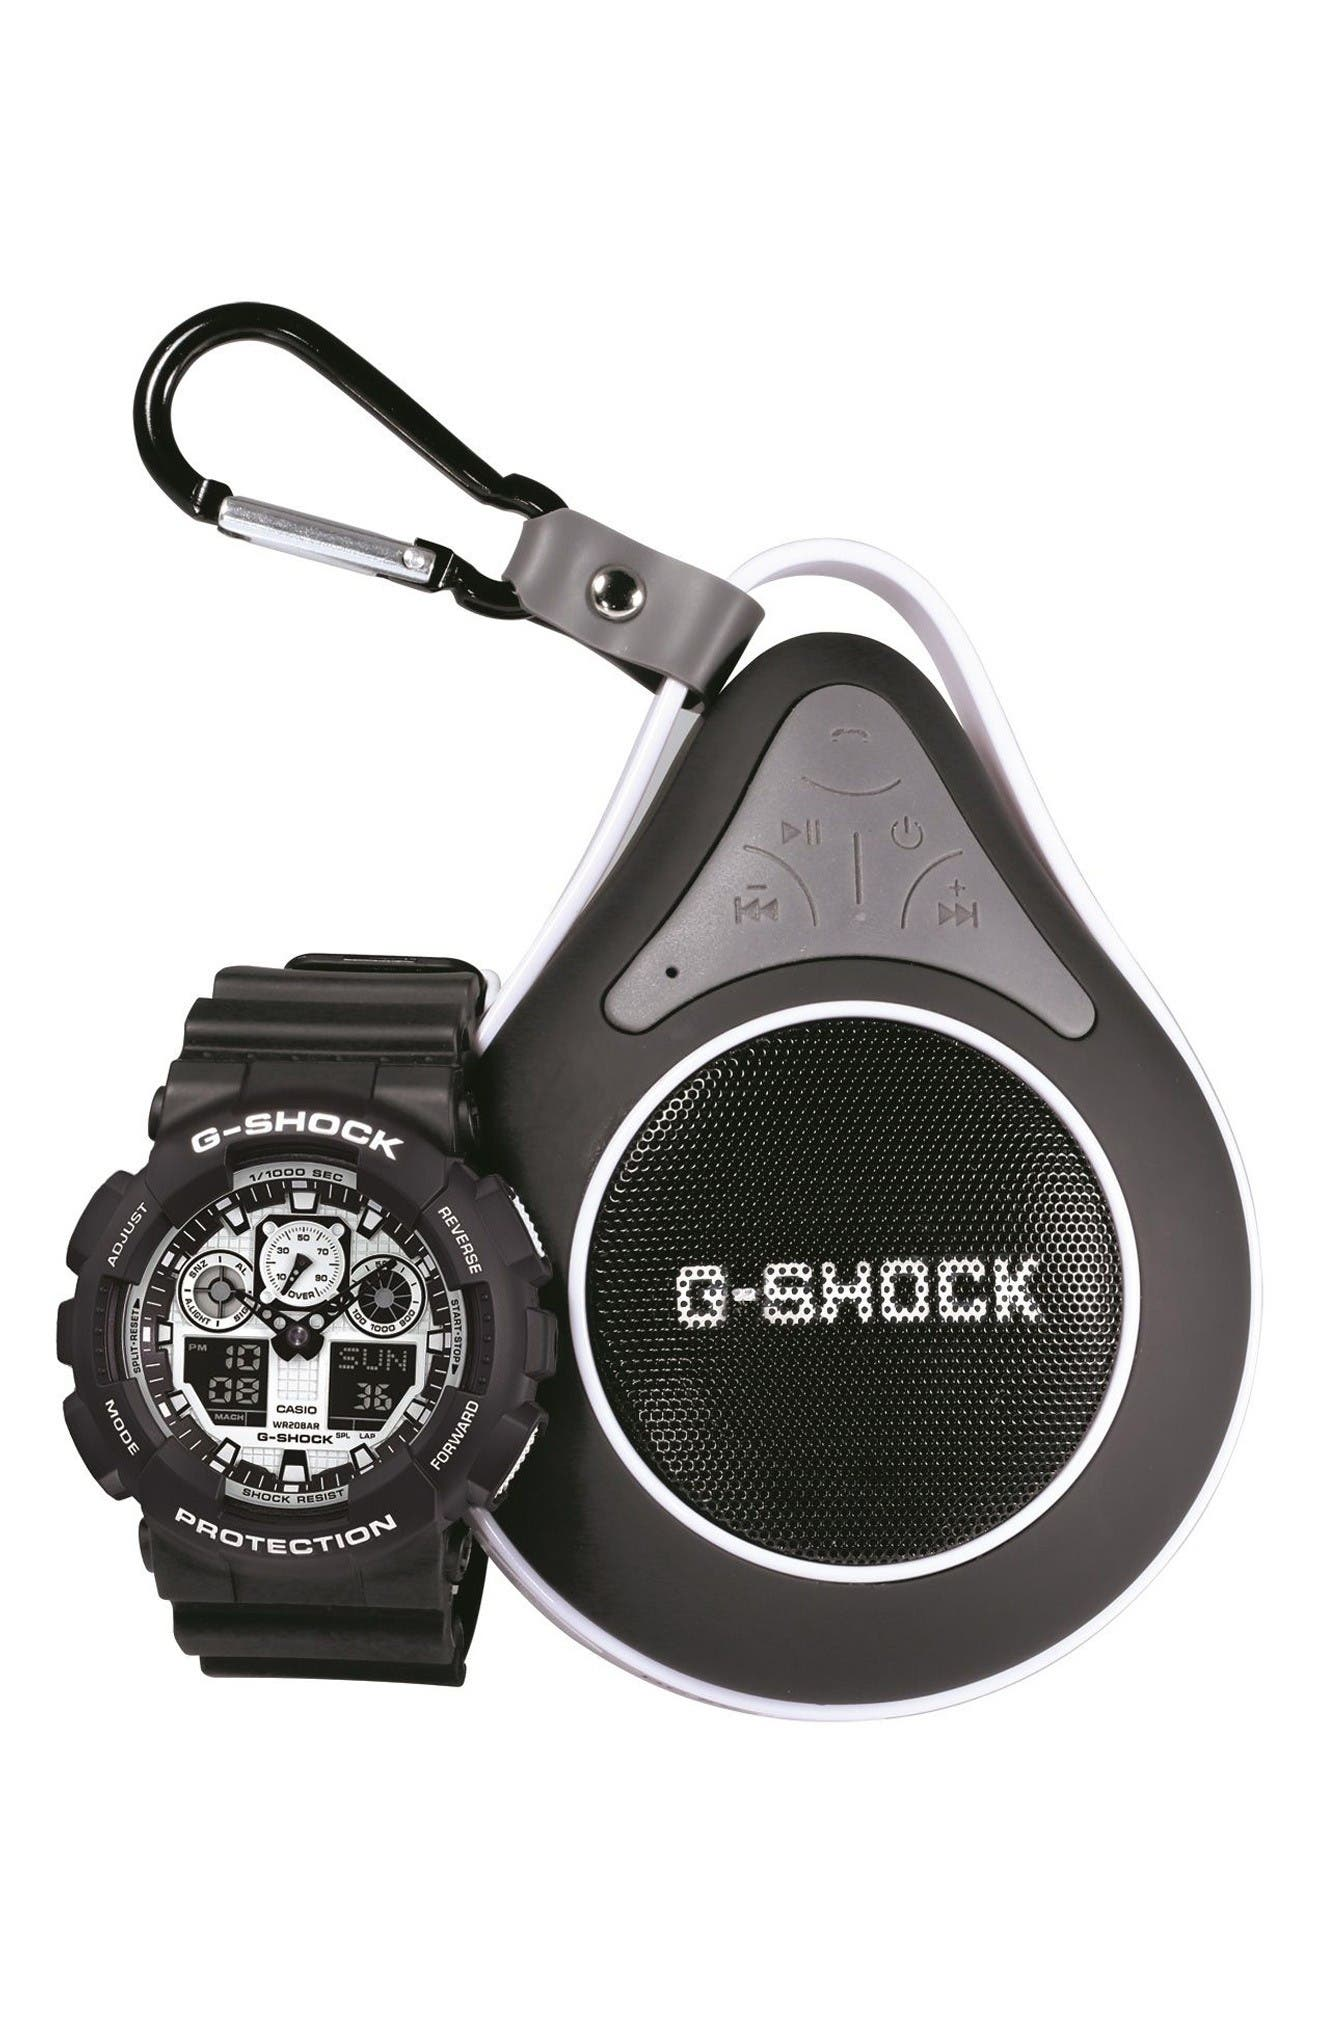 G-Shock Ana-Digi Watch & Speaker Set, 55mm